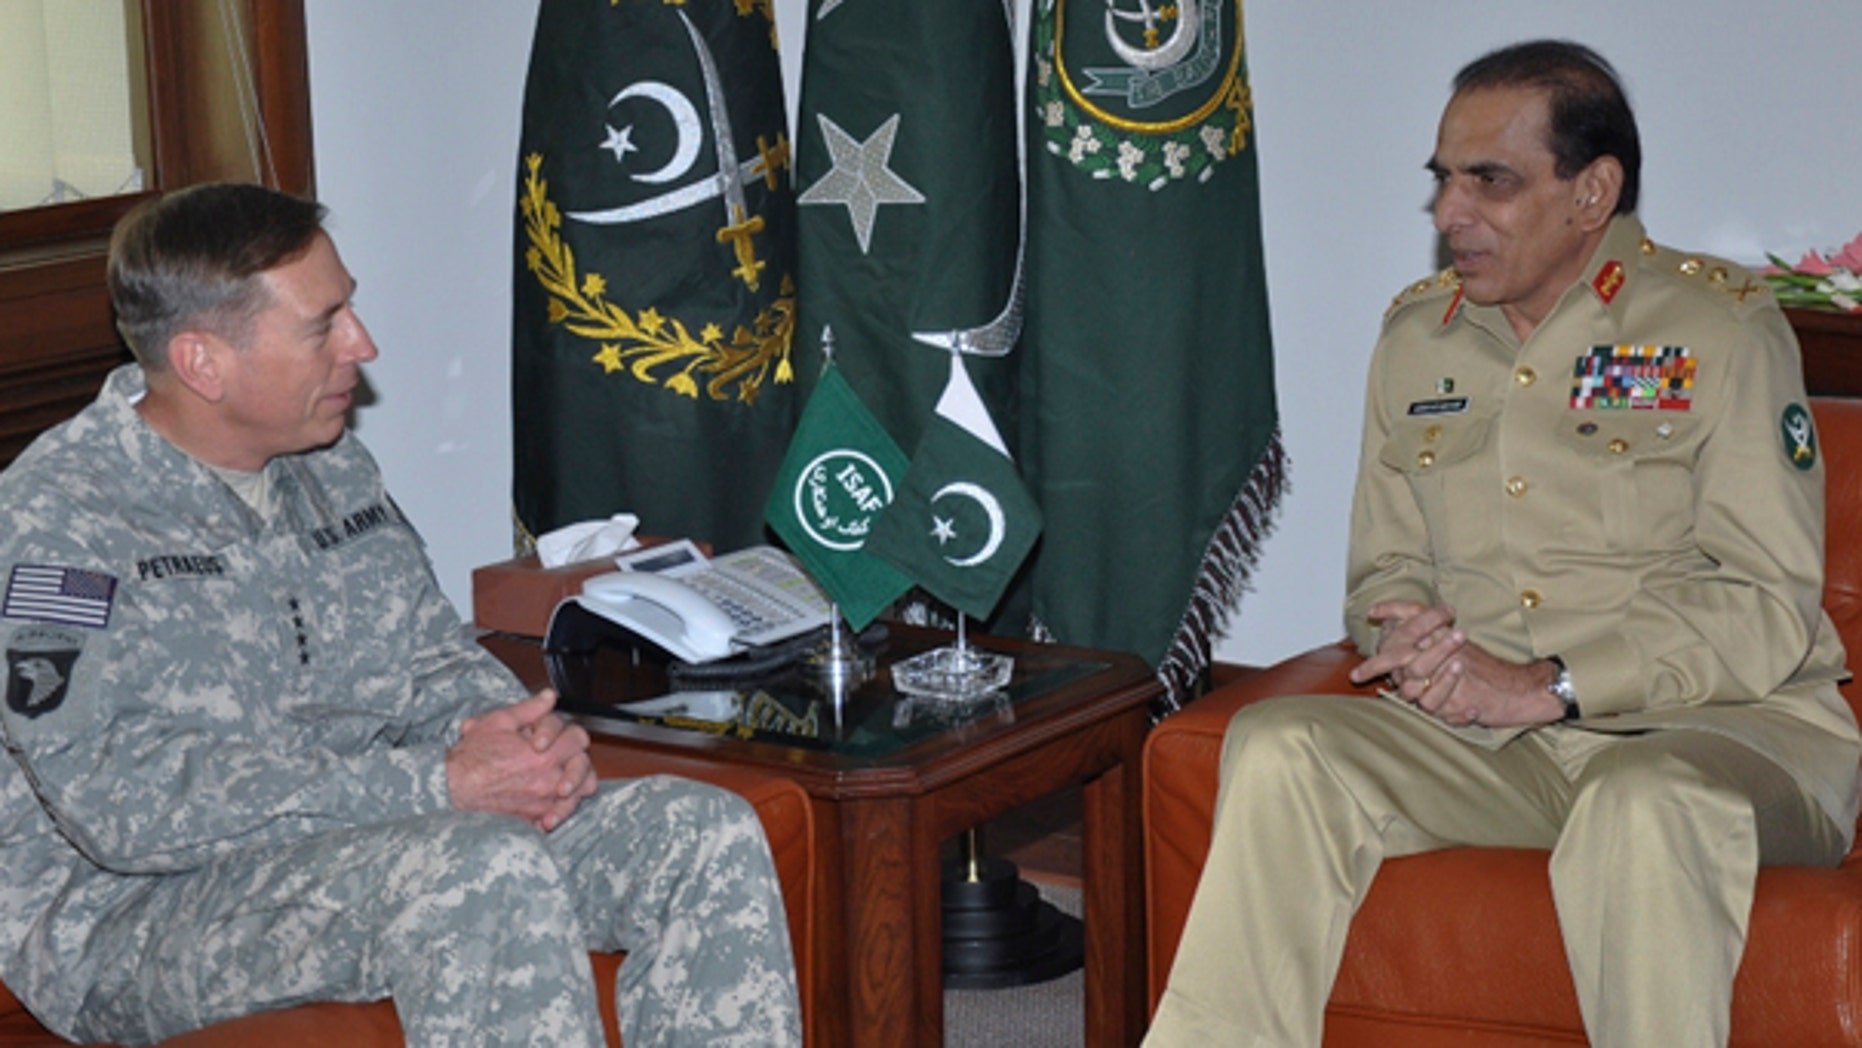 July 12: This photo made available by the Inter Services Public Relations department, shows U.S. Gen. David Petraeus, meeting Pakistan's army chief Gen. Ashfaq Parvez Kayani in Rawalpindi, Pakistan. (AP Photo/Inter Services Public Relations Department)